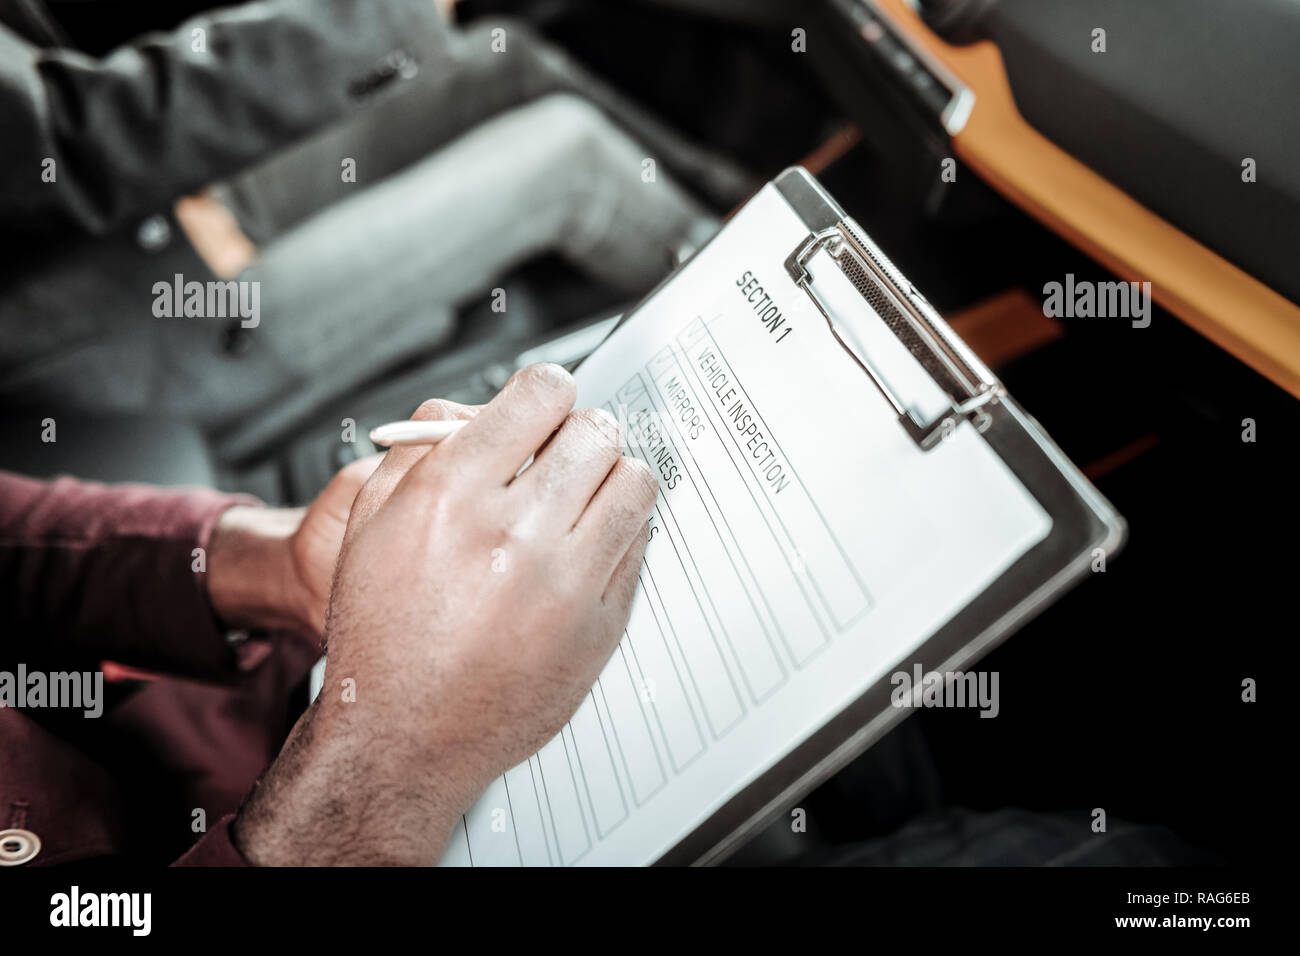 Close up of driving instructor holding pen while making notes - Stock Image